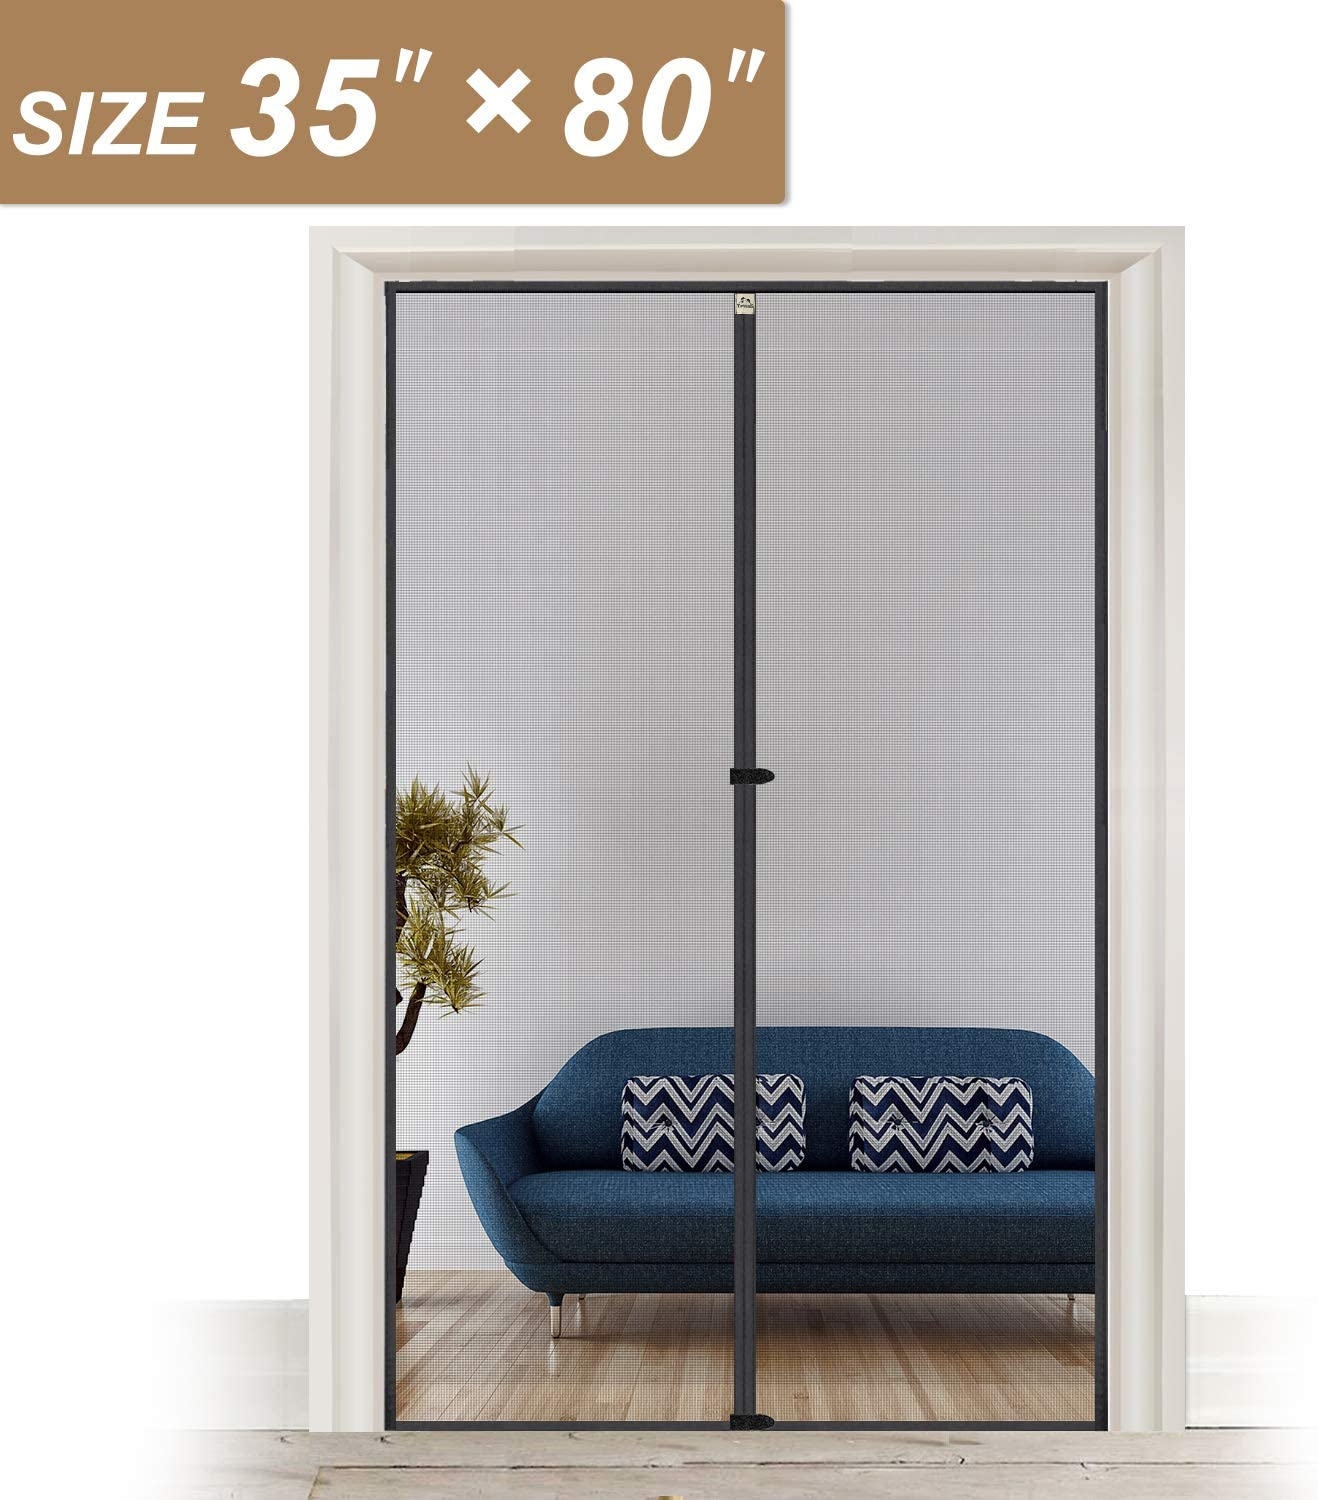 Magnetic Screen Door 33 x 83 Strengthened Fiberglass Mosquito Net Curtain Fit Doors Size Up to 33W x 83H Max